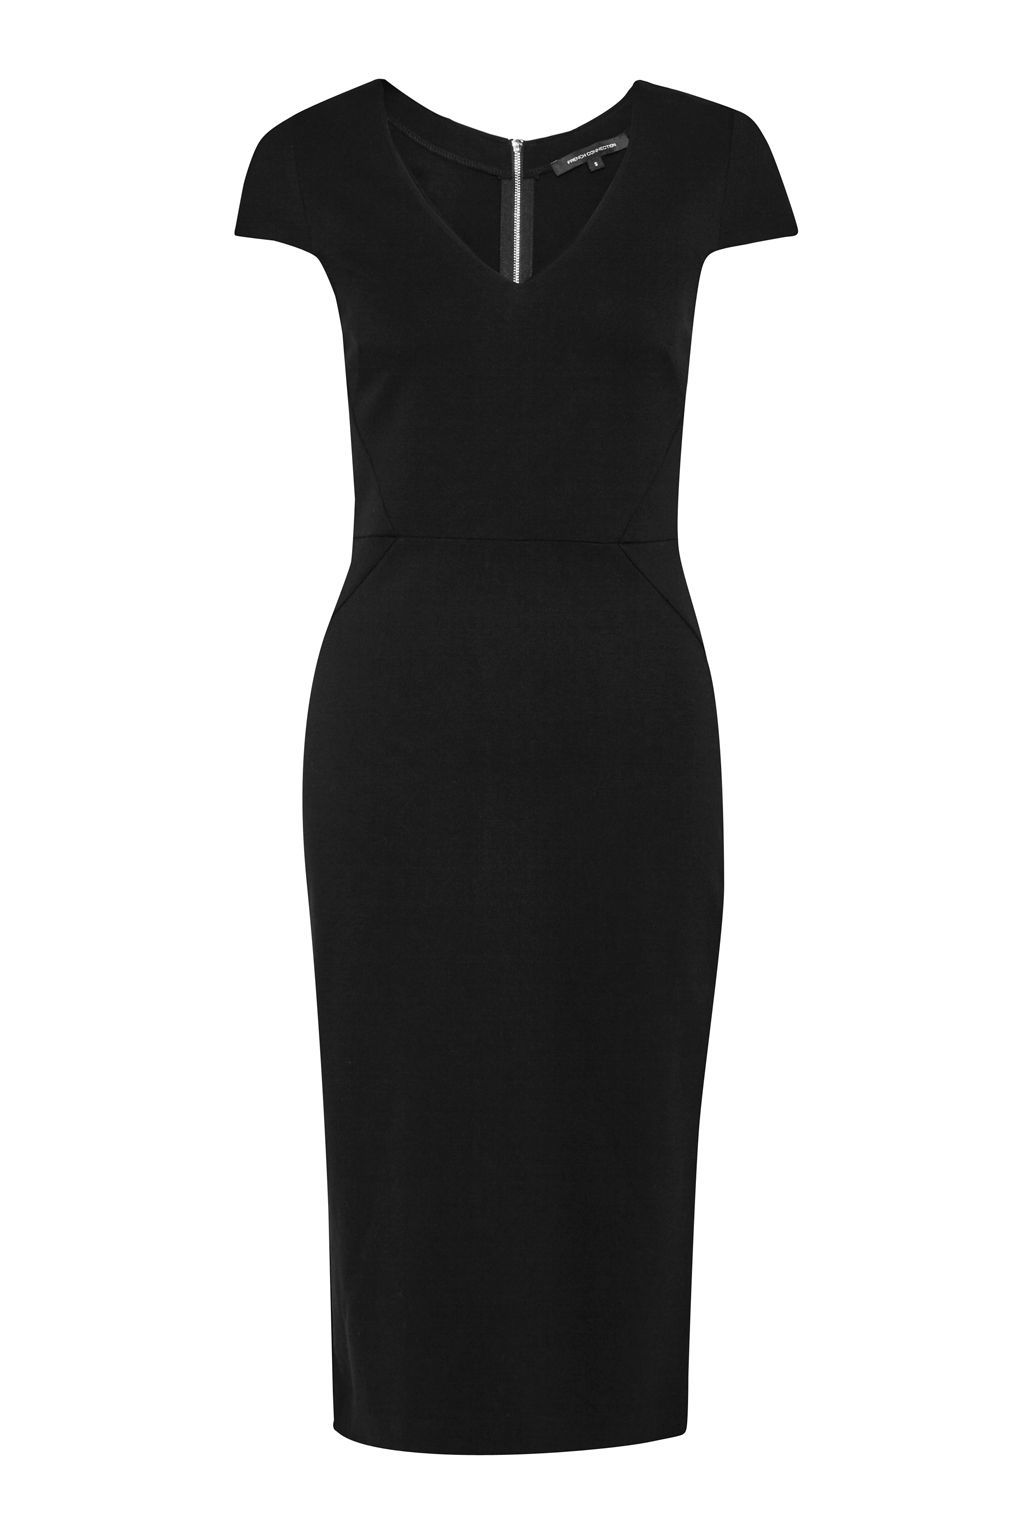 Lula Stretch Fitted Knee Length Dress, Black - neckline: v-neck; sleeve style: capped; fit: tight; pattern: plain; style: bodycon; predominant colour: black; occasions: evening; length: on the knee; fibres: viscose/rayon - 100%; sleeve length: short sleeve; texture group: jersey - clingy; pattern type: fabric; season: s/s 2016; wardrobe: event